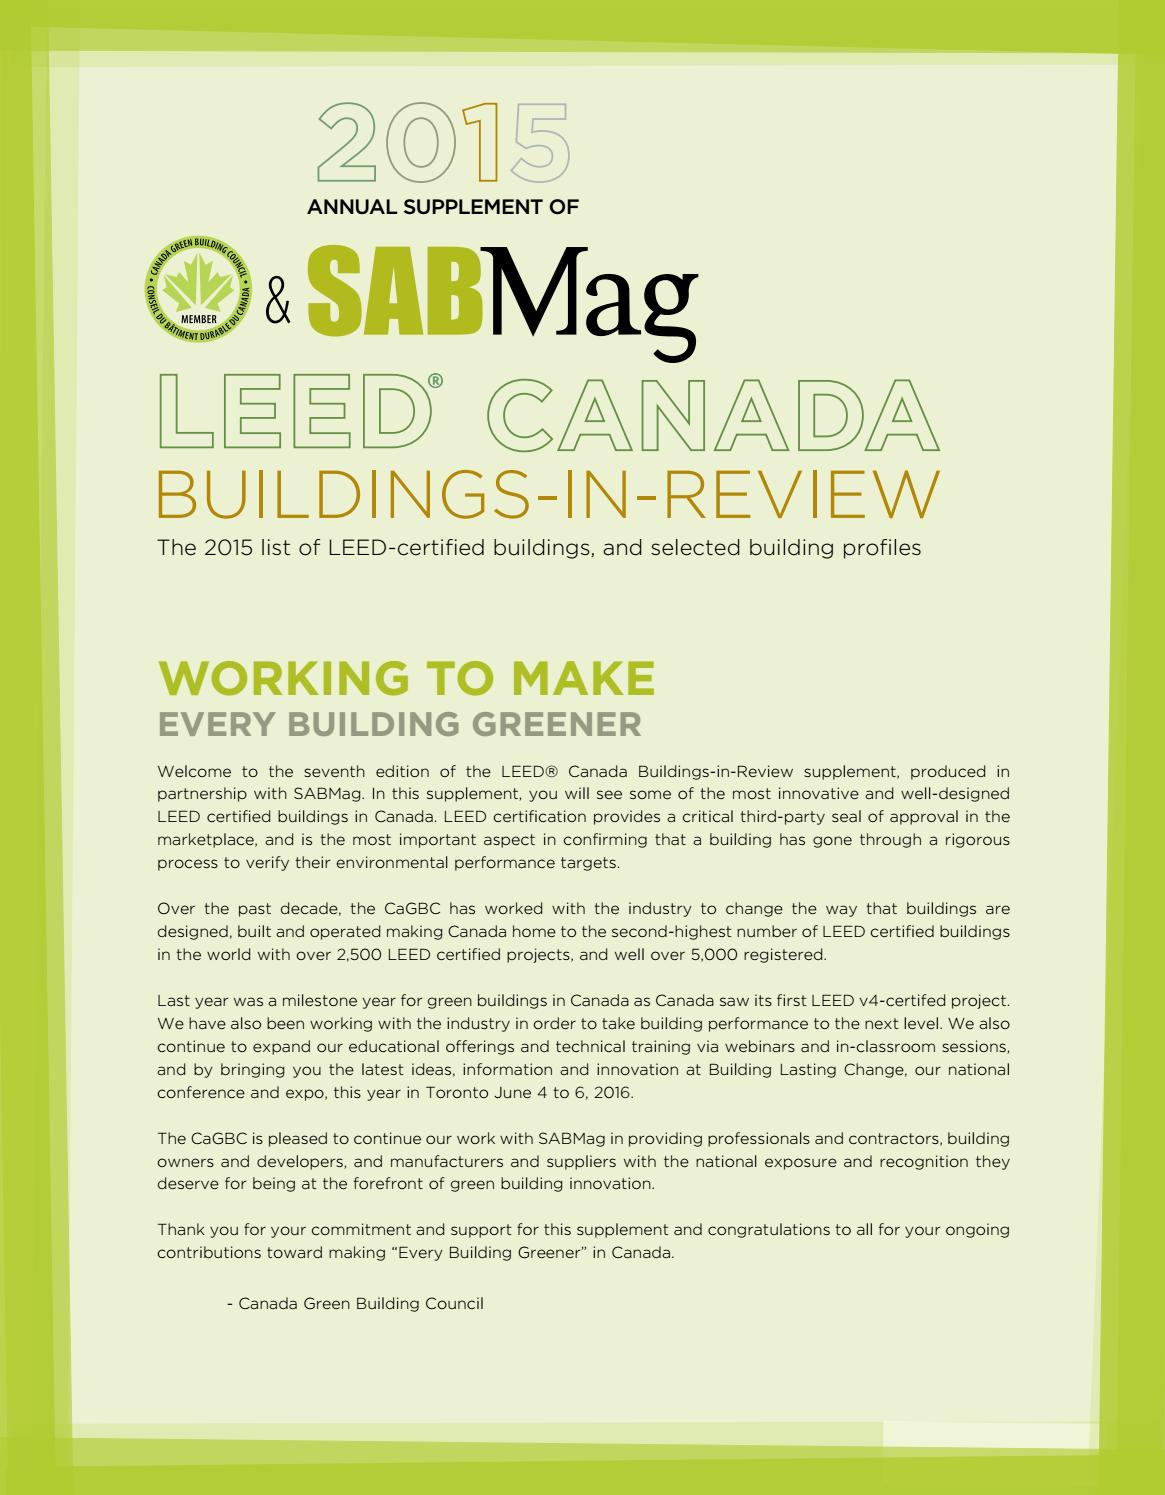 da form 2442 certificate of achievement template - leed certification calgary choice image editable